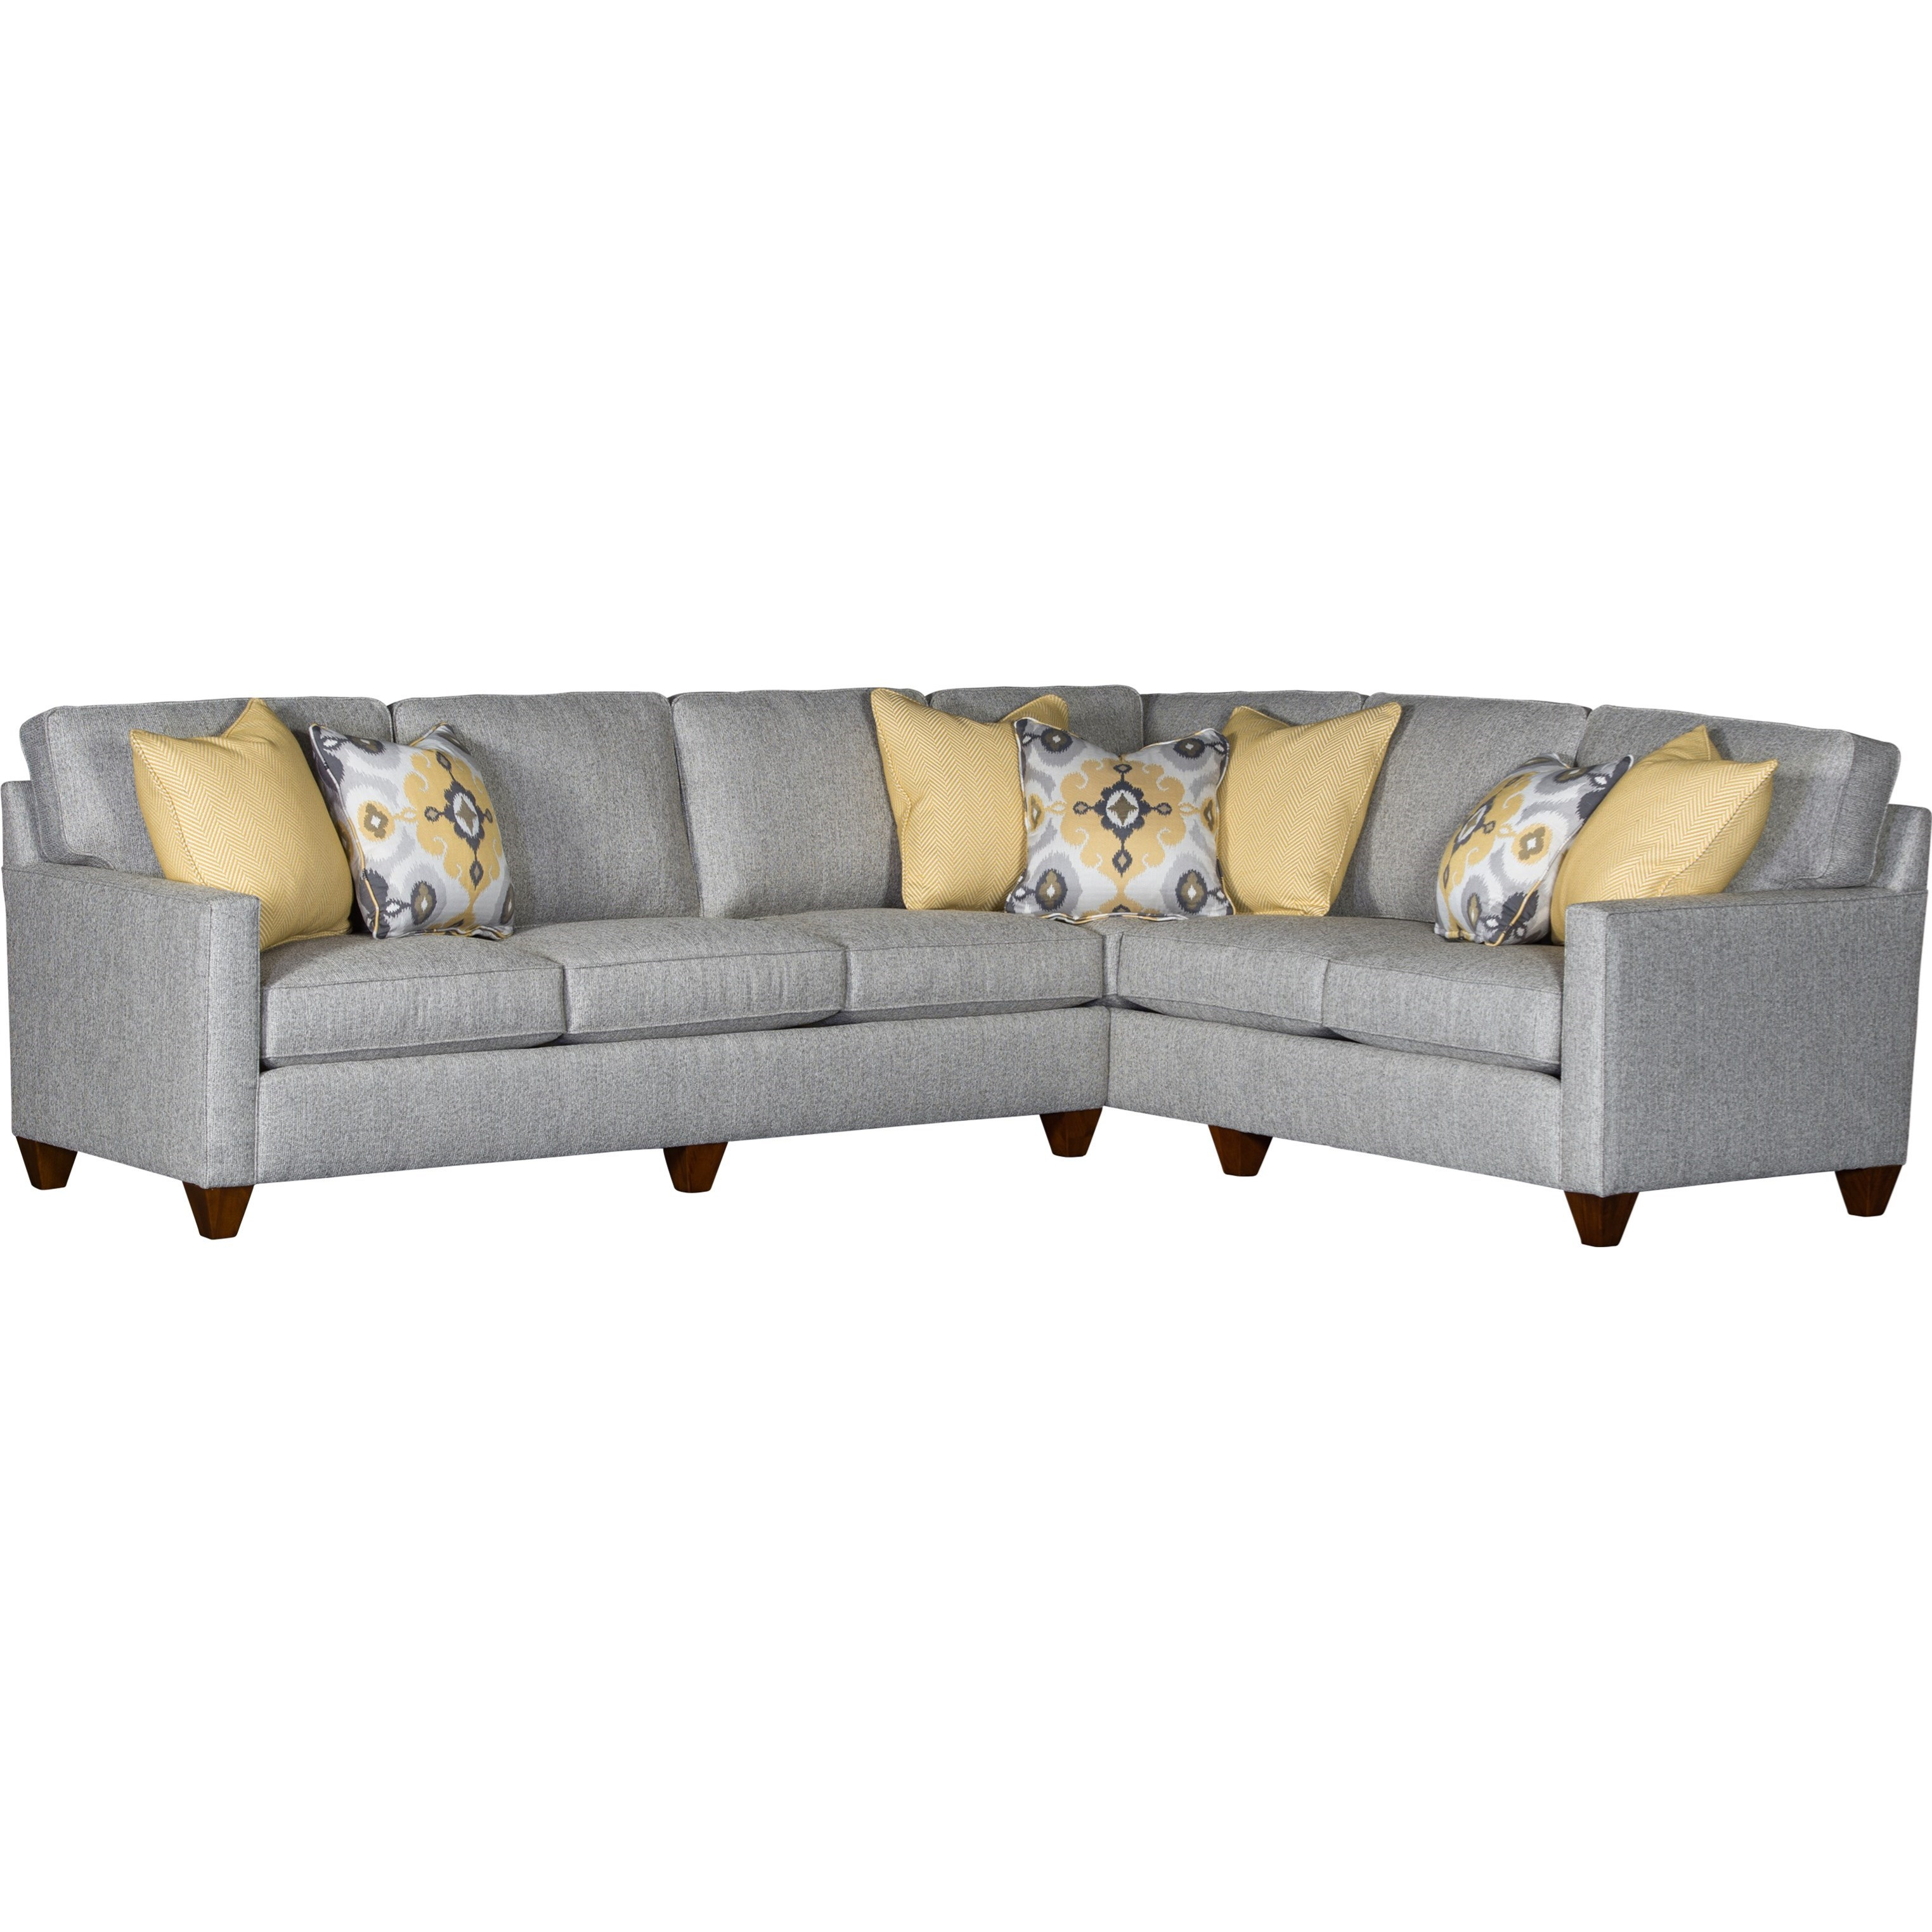 3830 2 Piece Sectional by Mayo at Pedigo Furniture